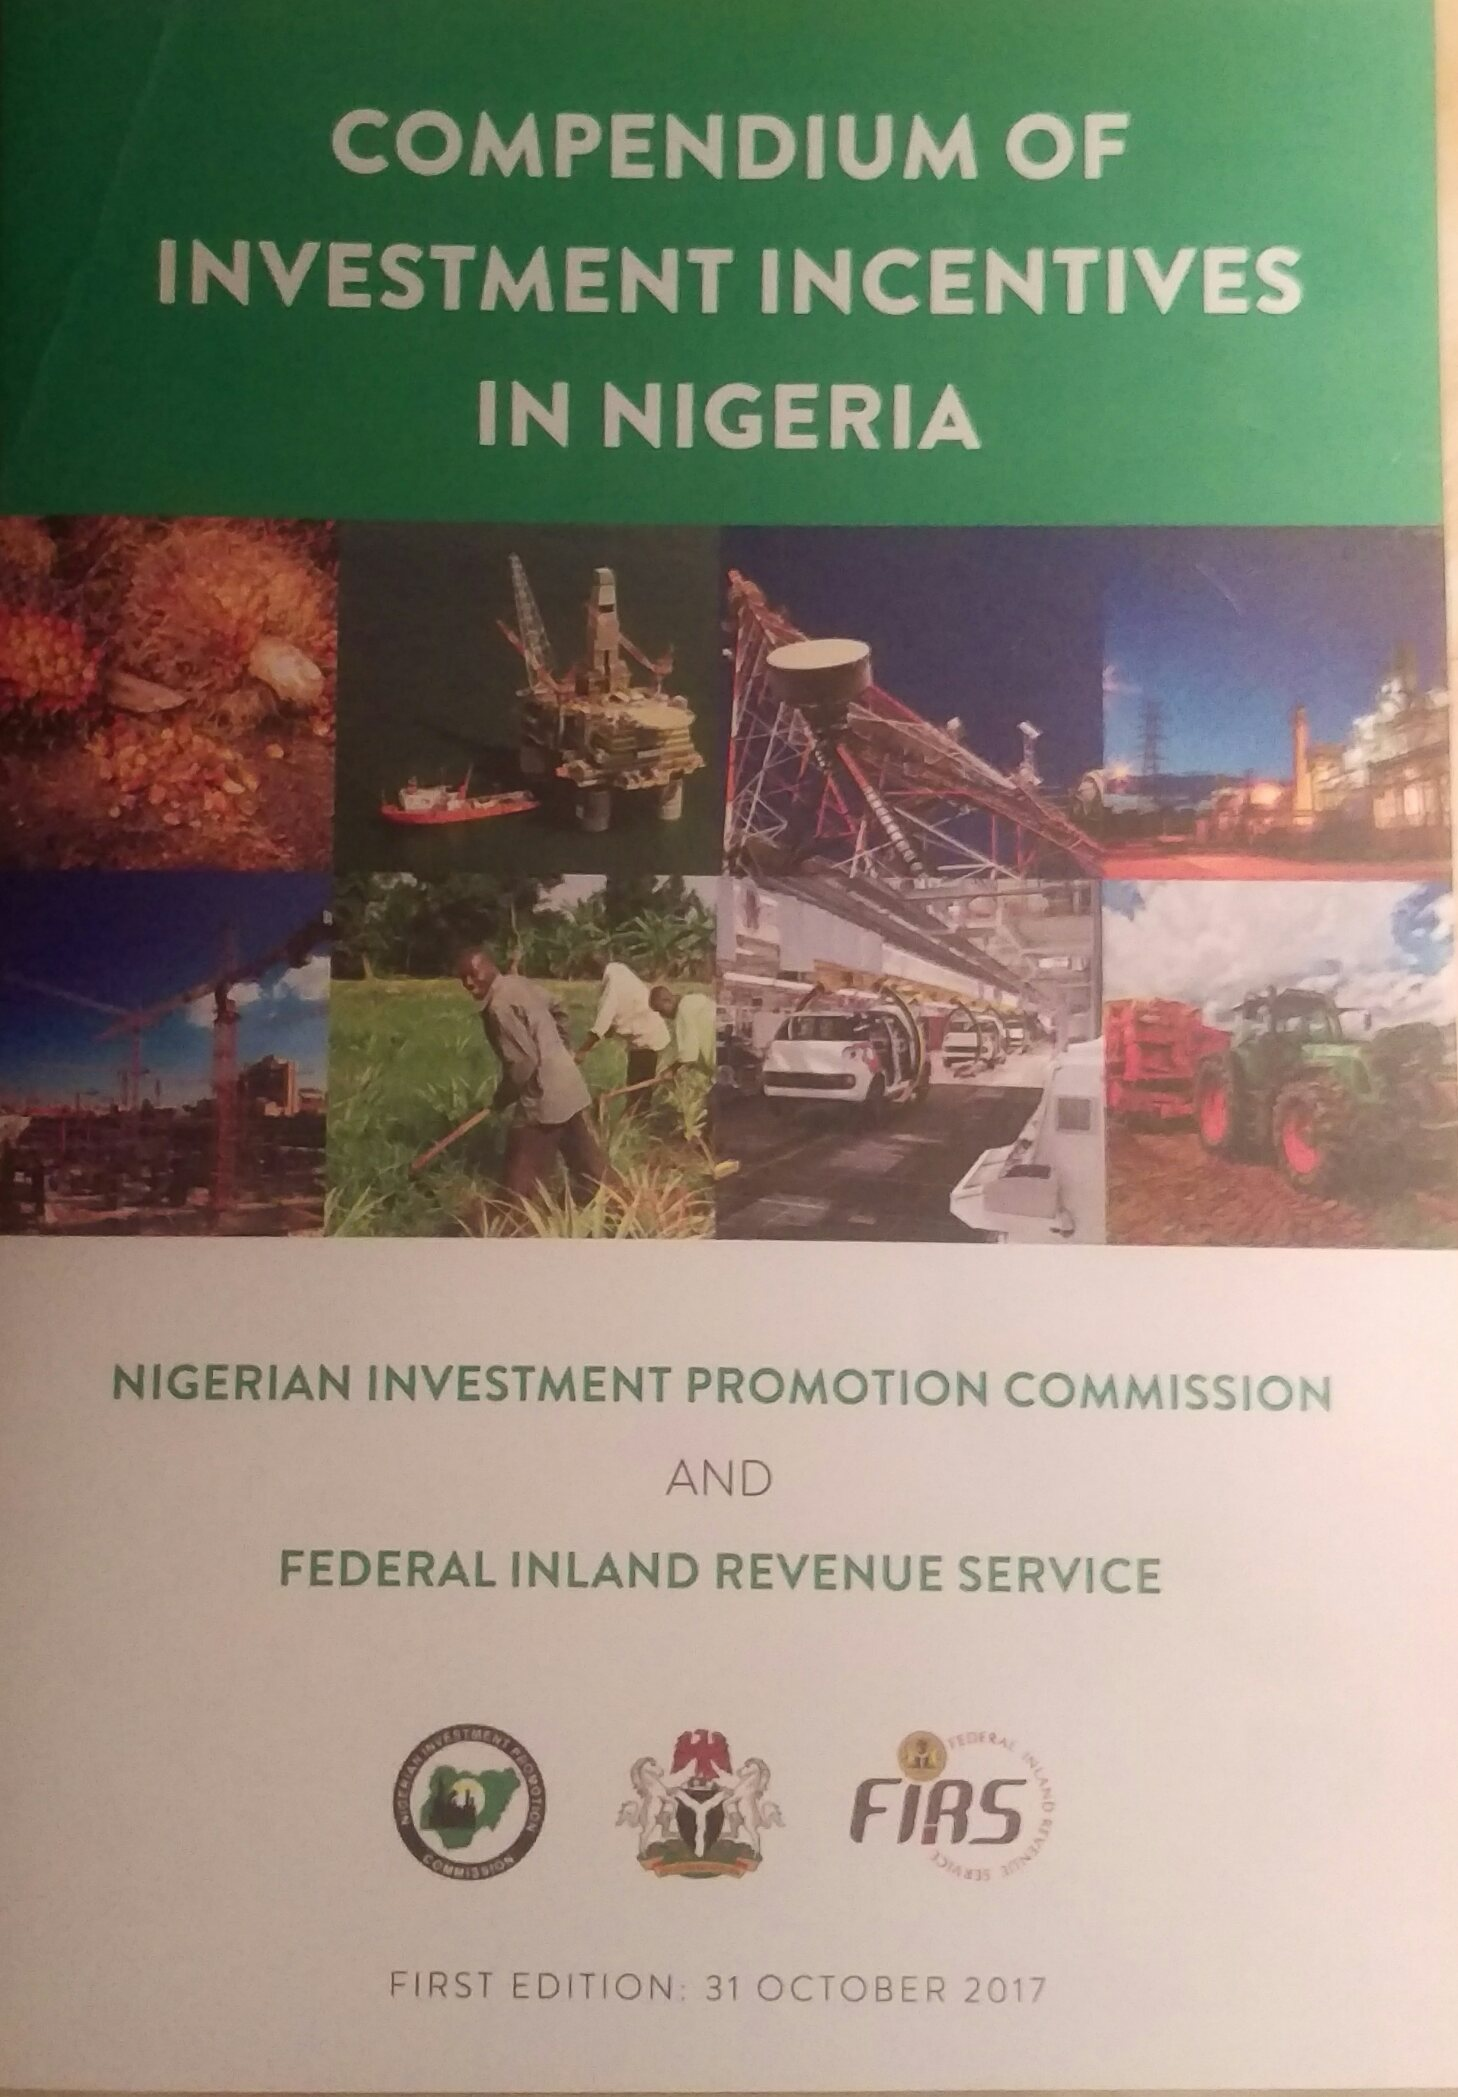 nigerian industrial policy and incentive from 1999 till date